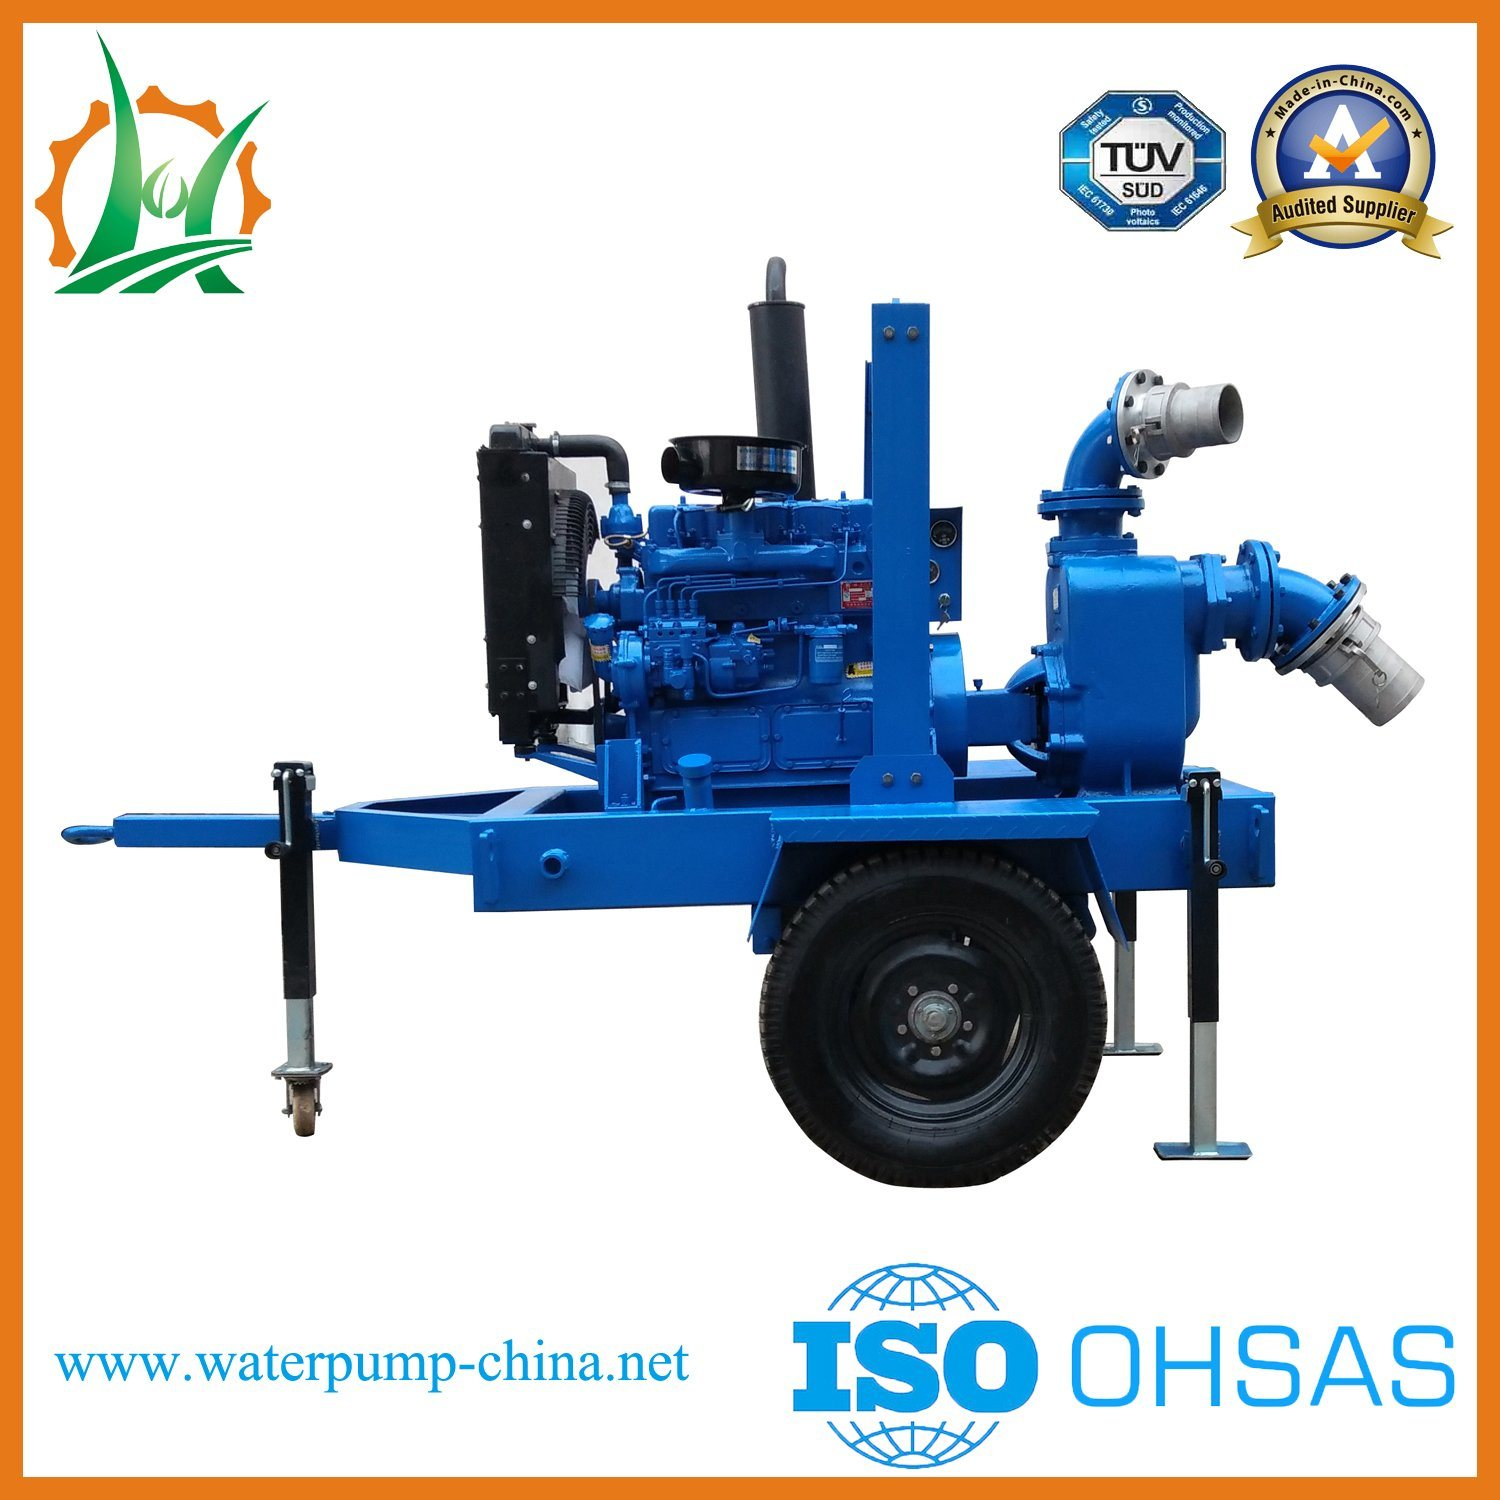 Zw Series Sewage Dewatering Industry Waste Water Pump